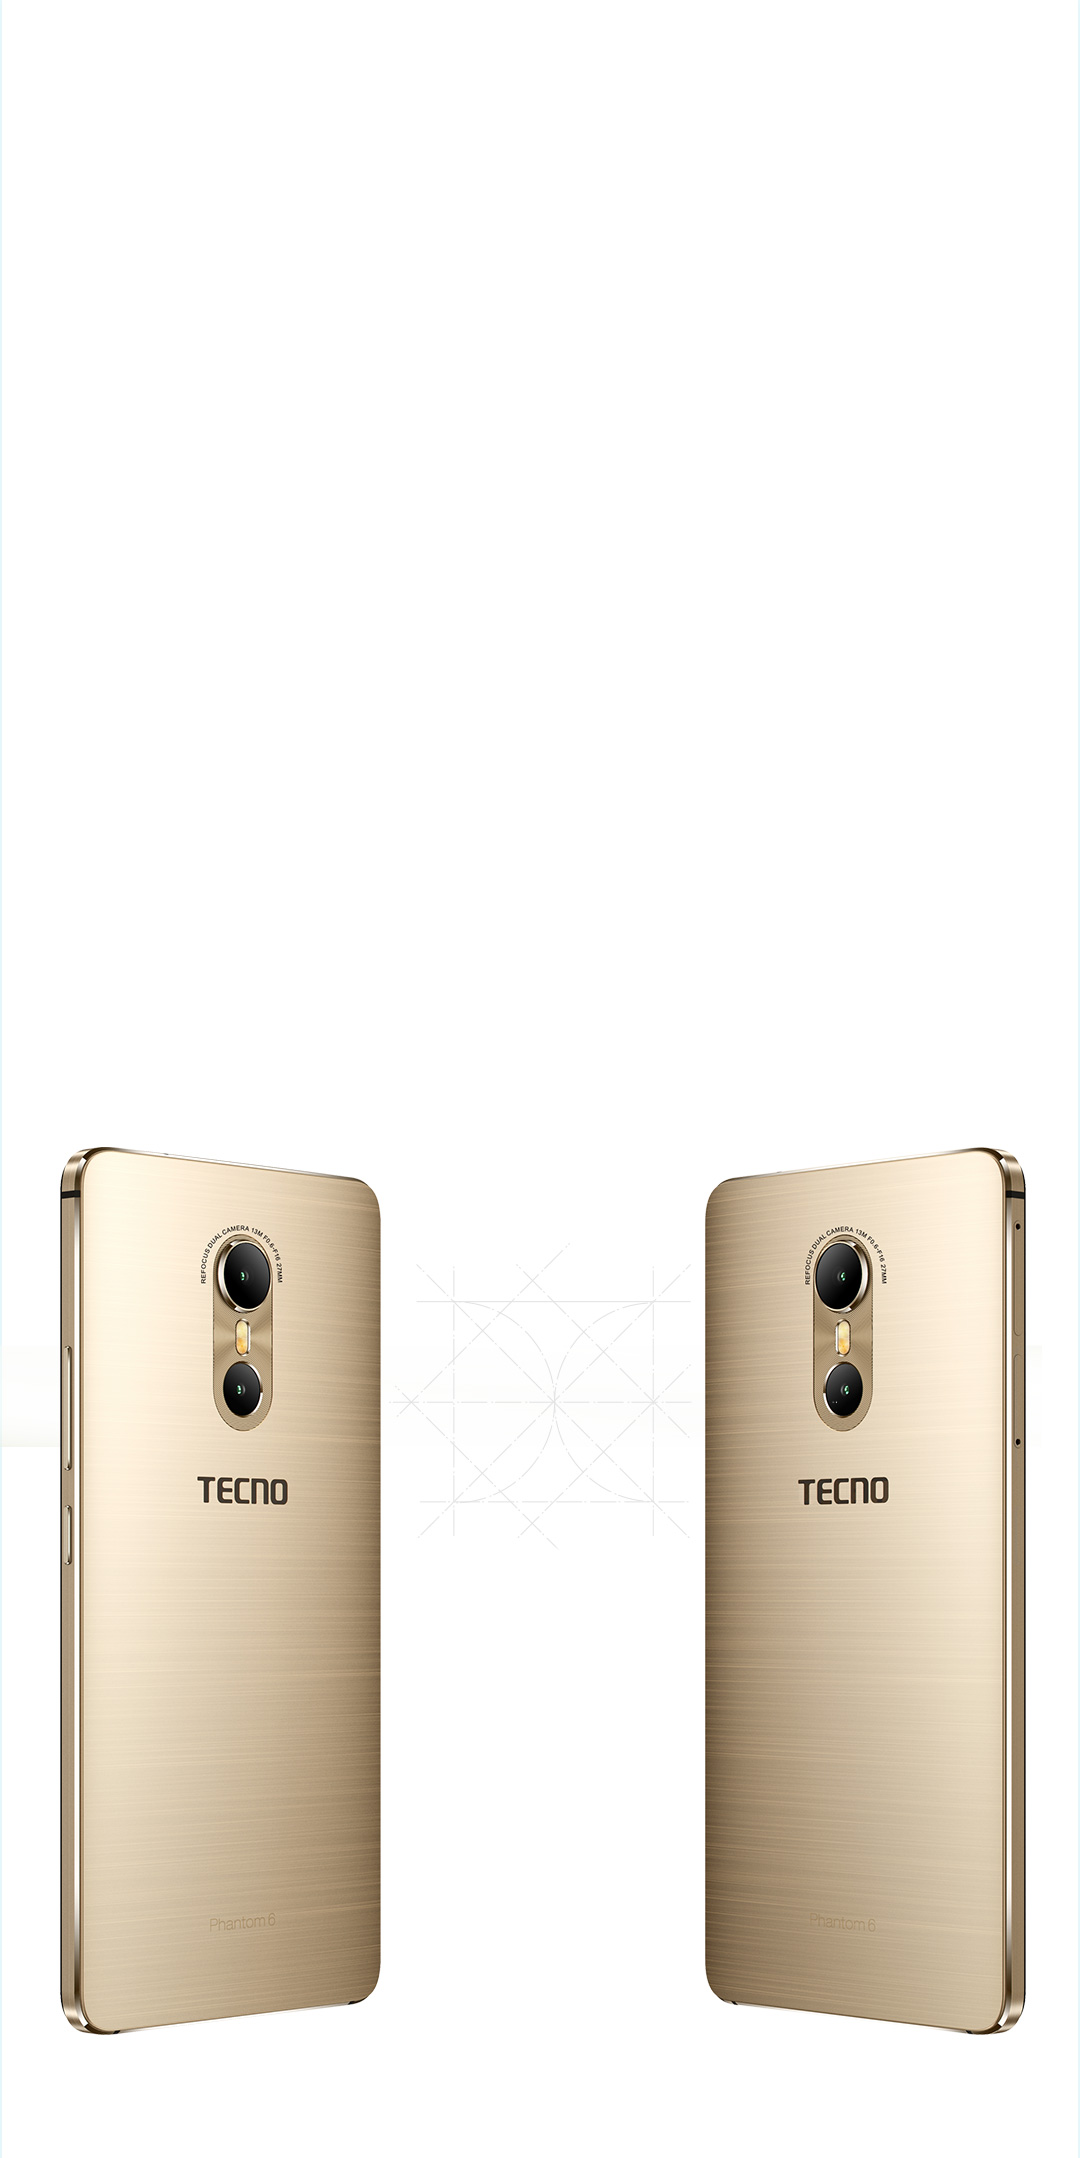 TECNO Phantom 6, Aesthetic Symmetry